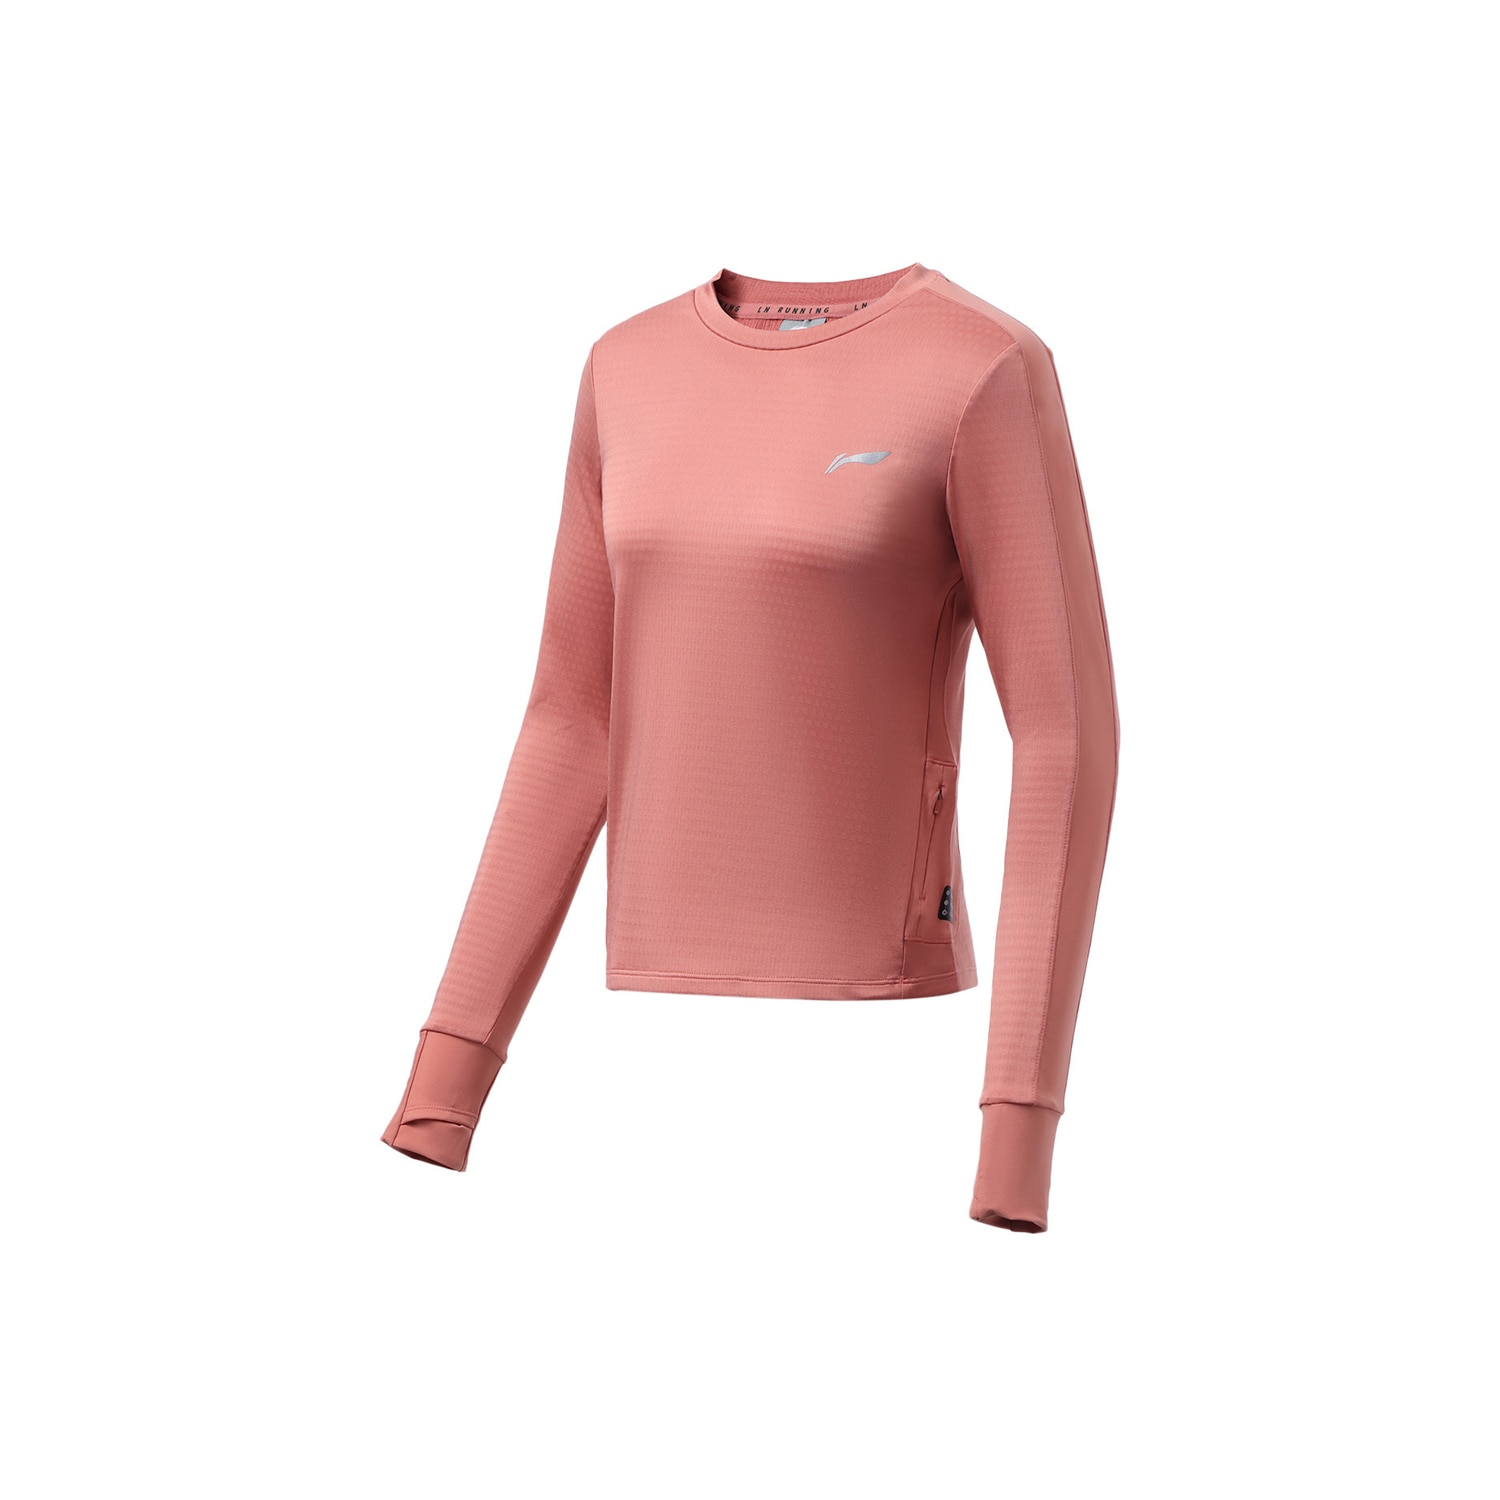 Women's Long-Sleeved Running T-shirt New Running Collection Quick-Drying Cool round Neck Winter Reflective Sportswear enlarge